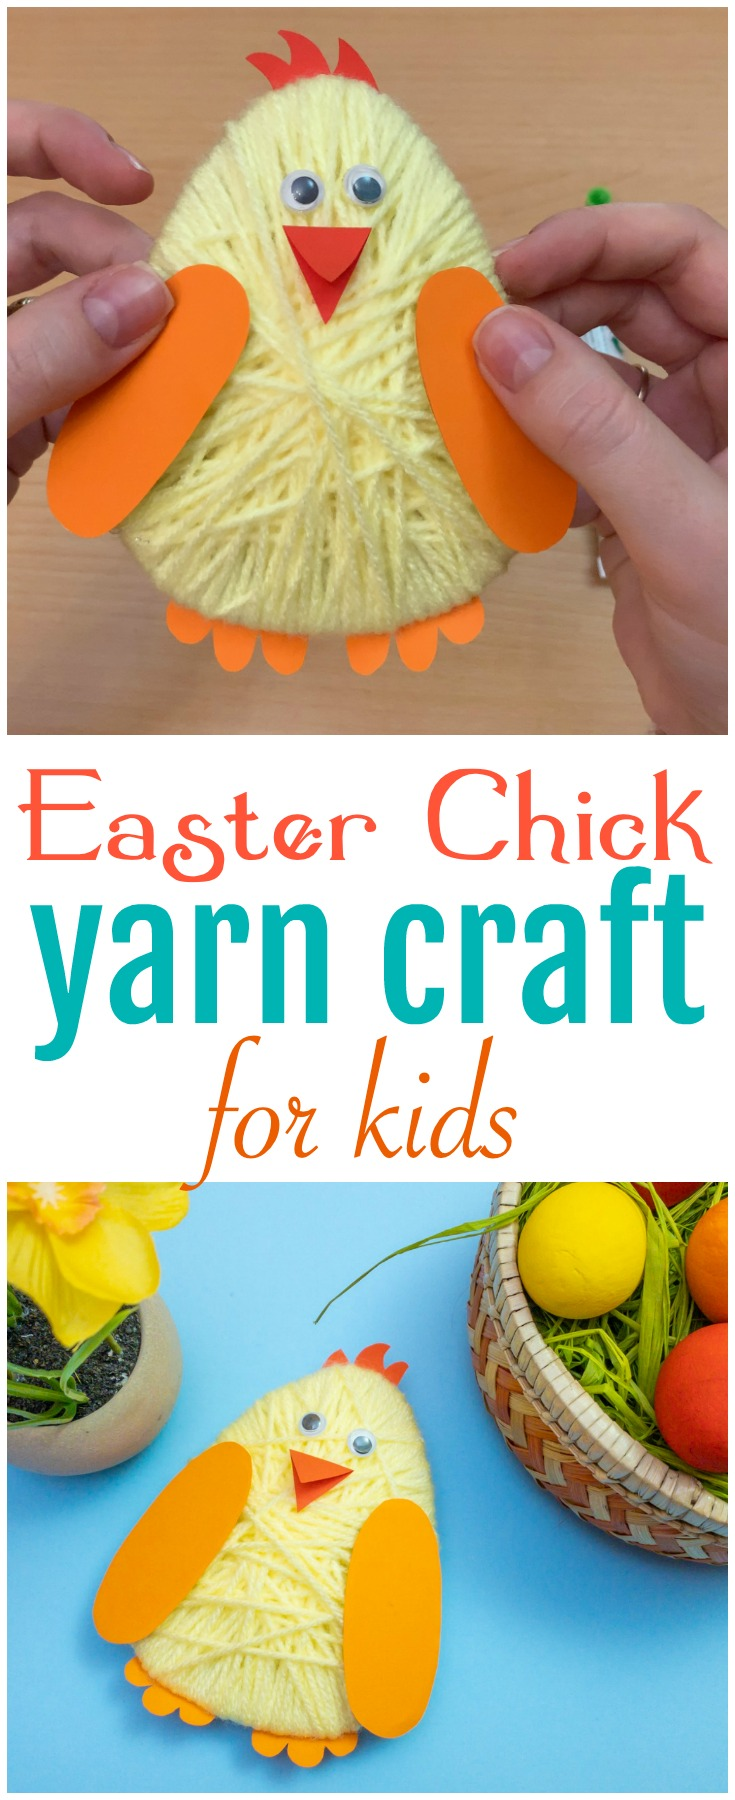 This adorable Easter ChickYarn Craft is simple for kids to make and the perfect way to welcome spring and the Easter holiday! #Easter #Yarn #YarnCraft #Kids #Spring #KidsCraft #Spring